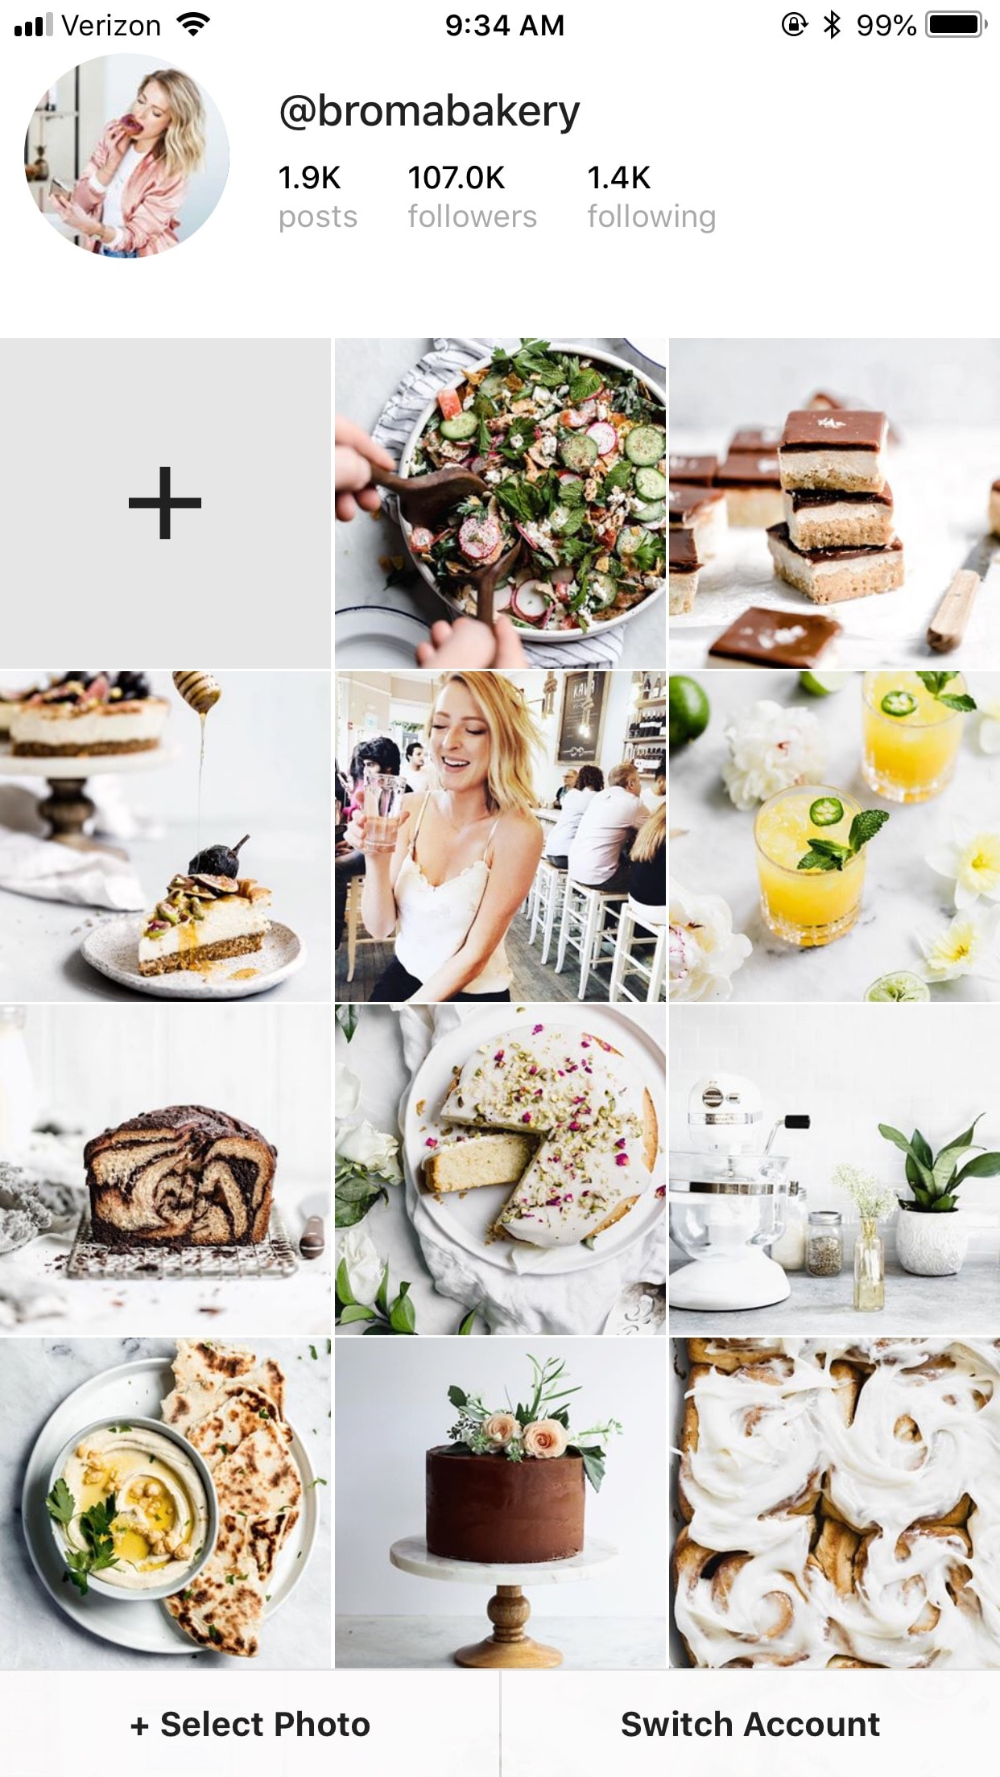 Here Are The Decorating Secrets Top Designers Swear By с изображениями: 6 Ways To Curate The Perfect Food Instagram Feed - Broma Bakery в 2020 г (с изображениями)